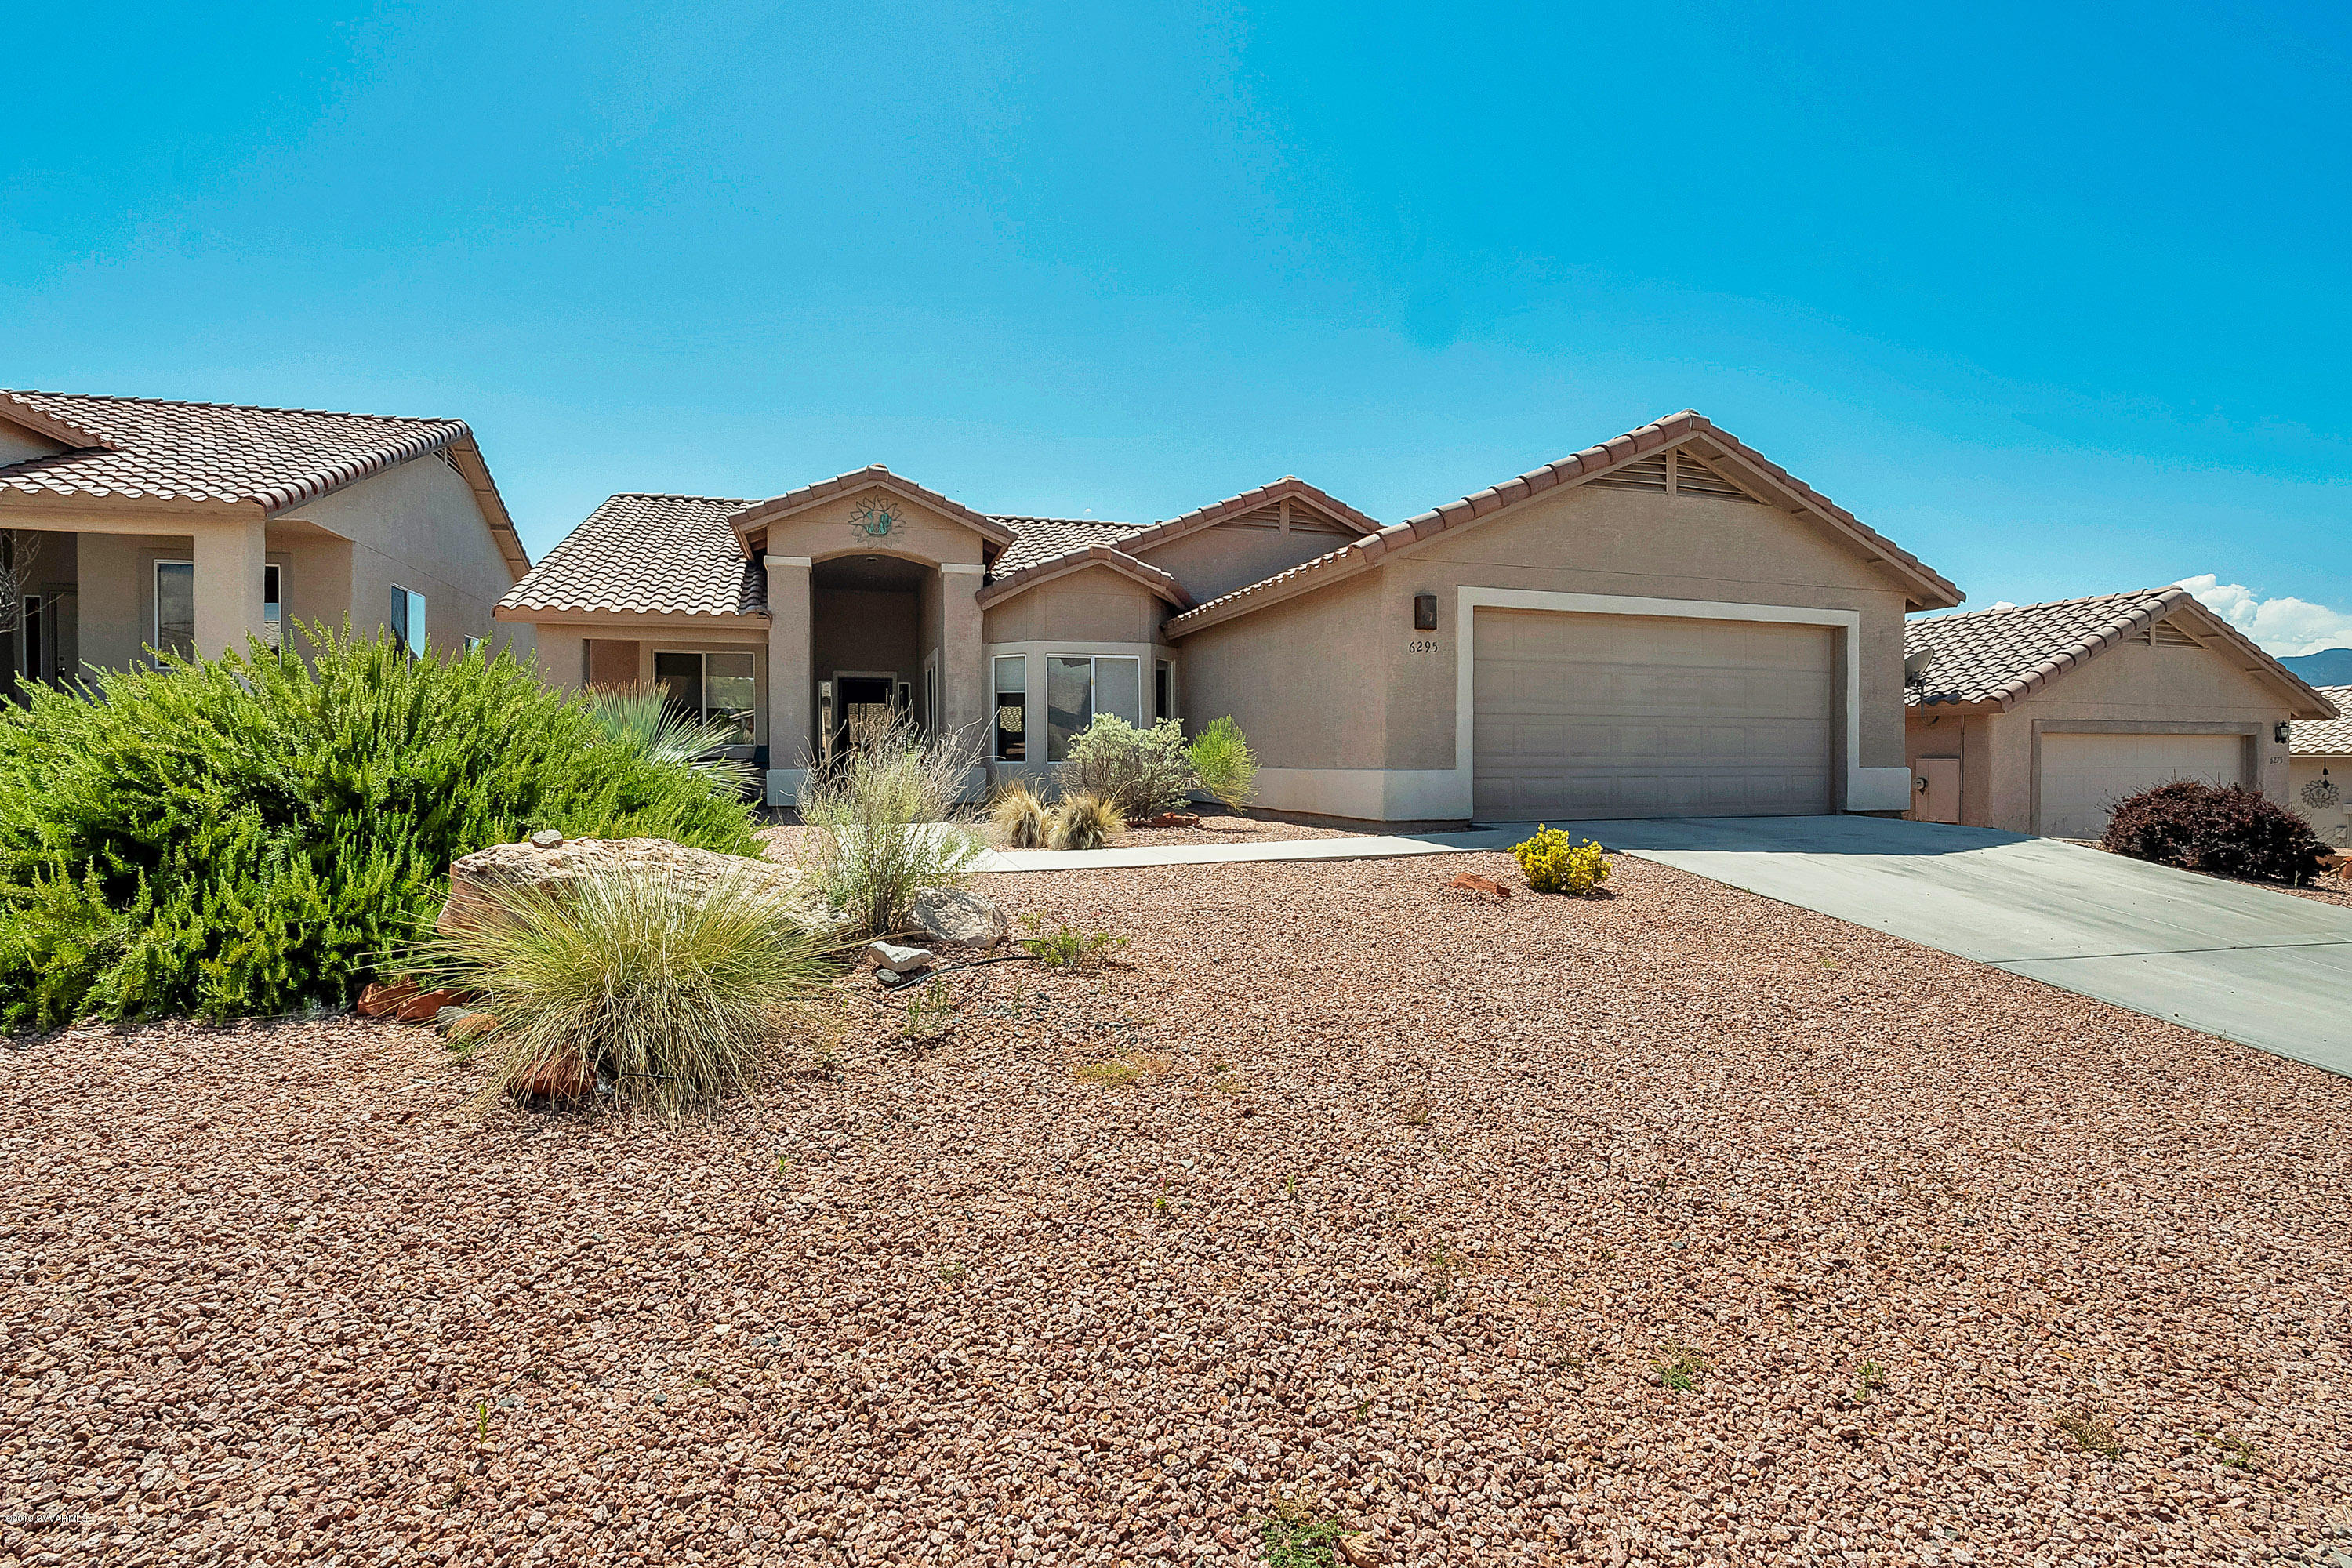 6295 E Starry Night Court Cornville, AZ 86325